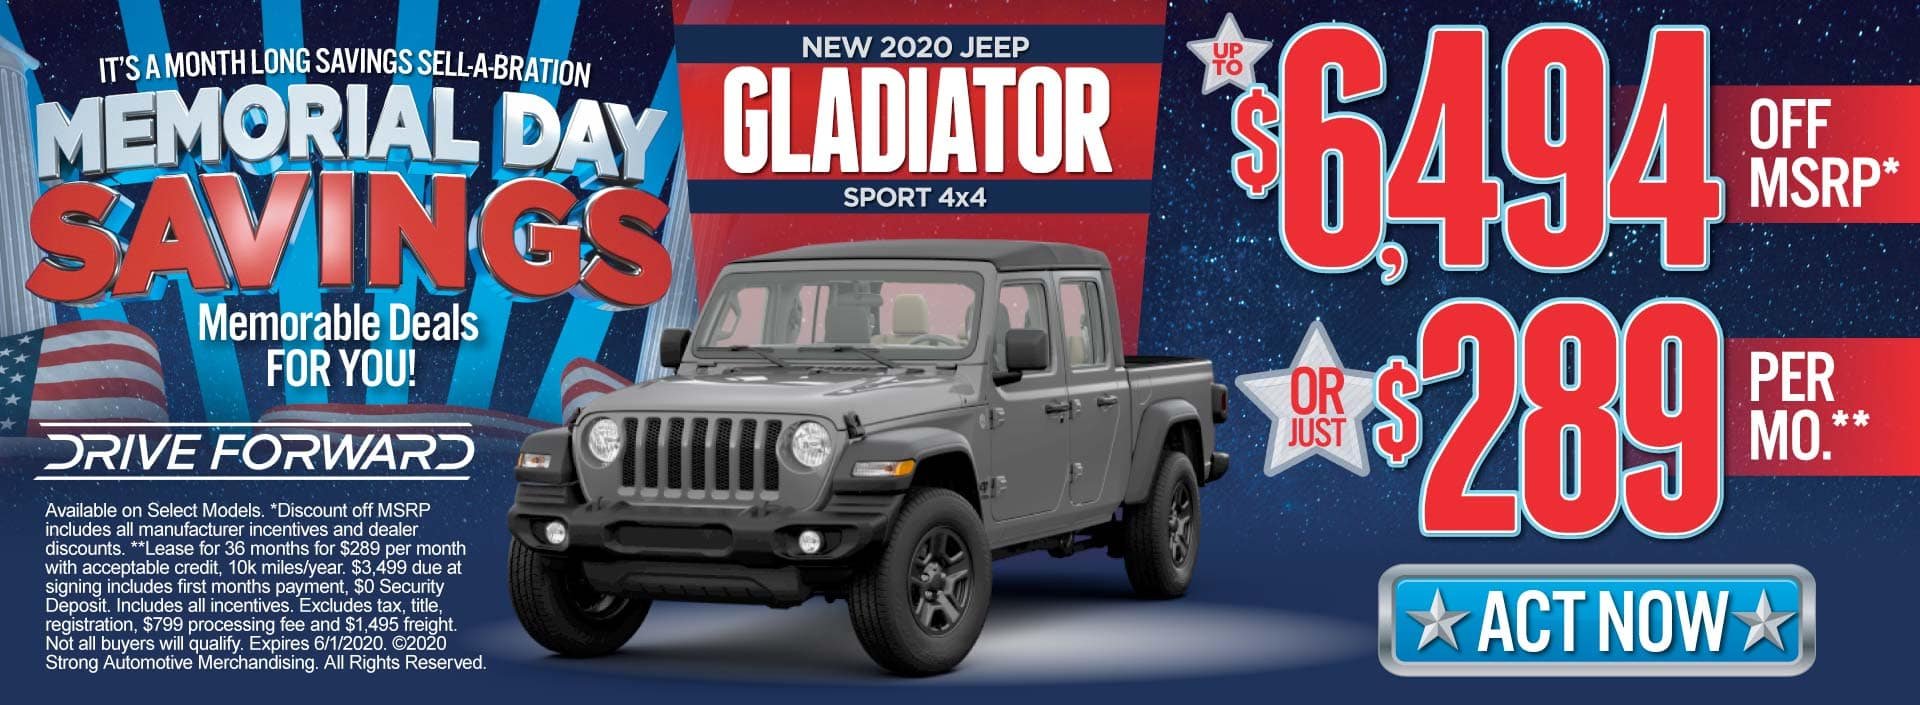 New 2020 Jeep Gladiator up to $6494 Off MSRP or $289/mo. ACT NOW